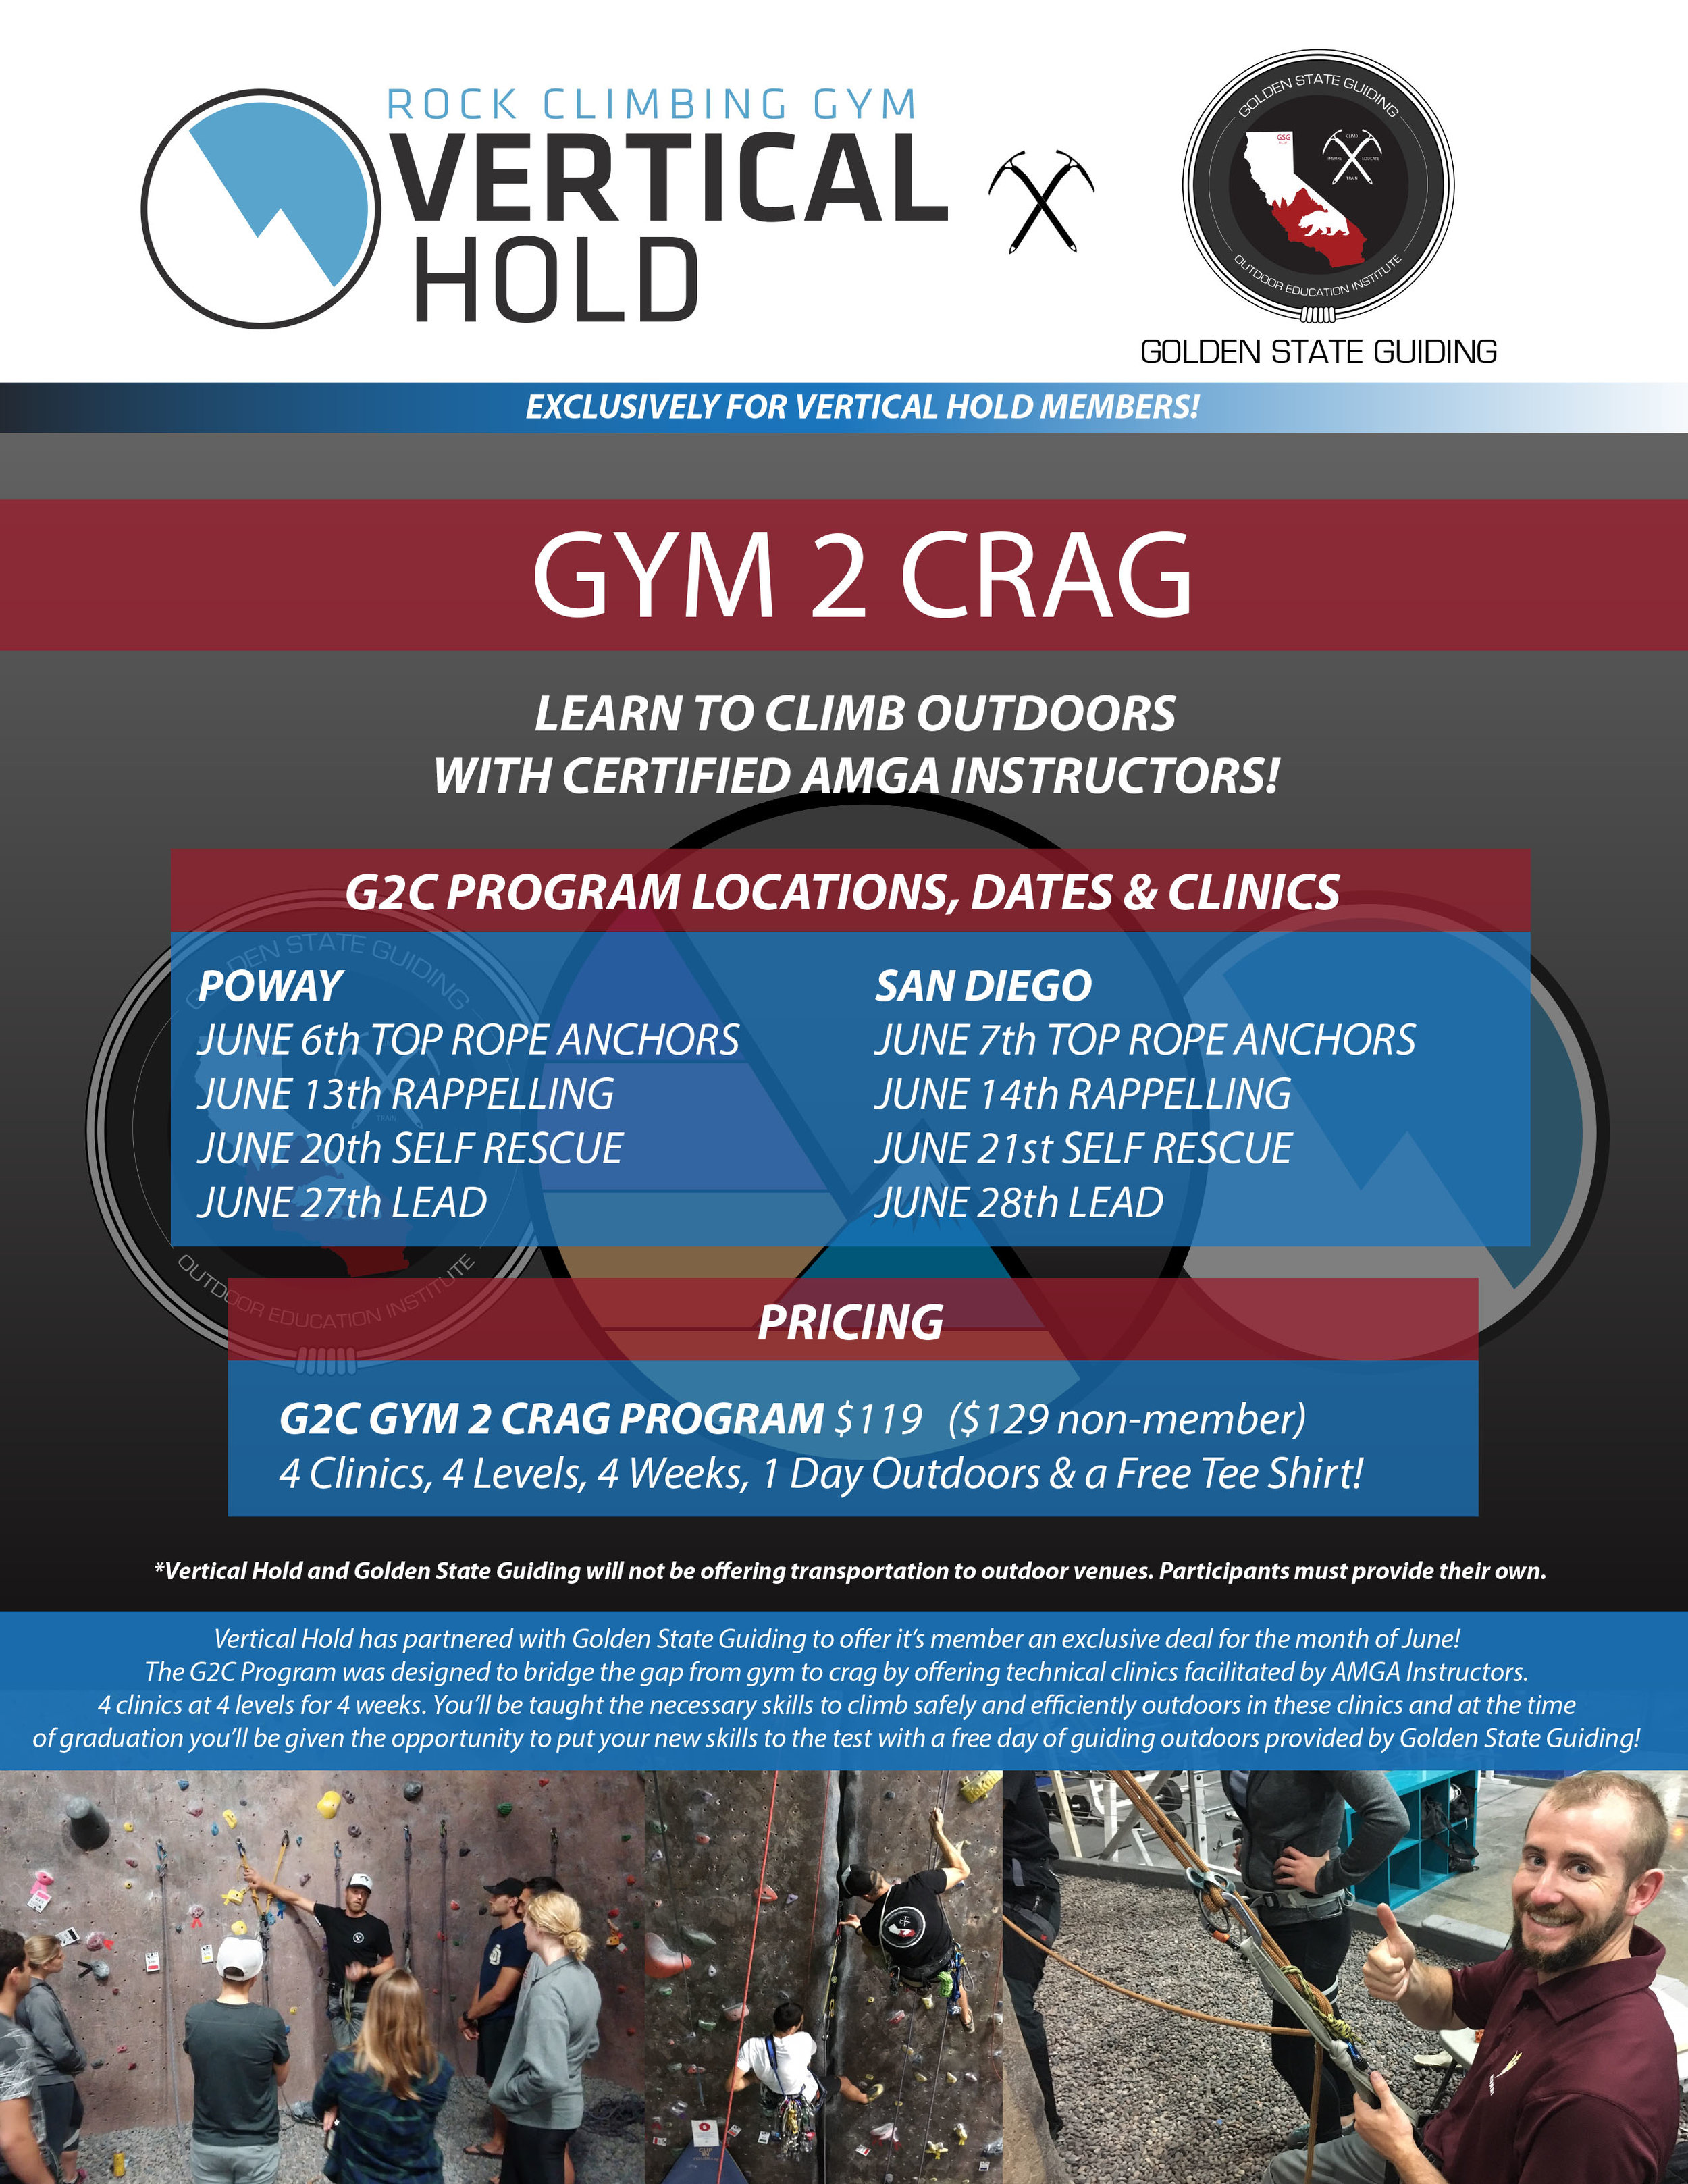 Golden State Guiding G2C Gym to Crag Program